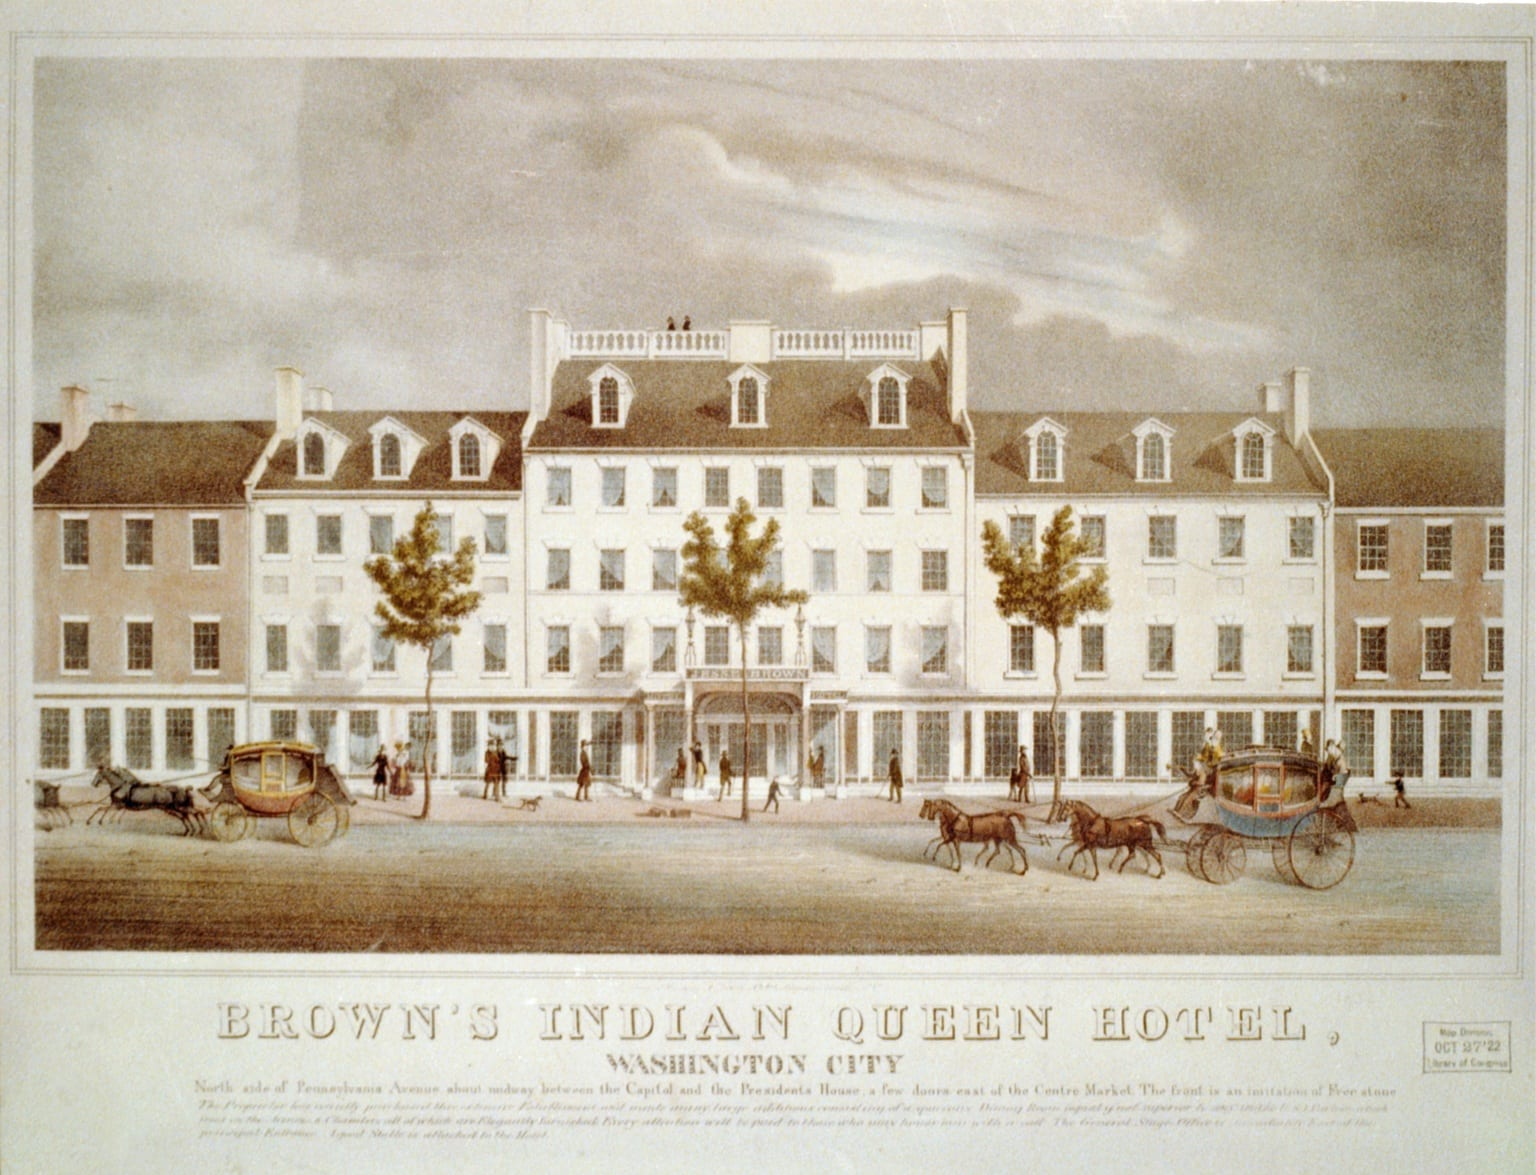 Brown's Indian Queen Hotel on Pennsylvania Avenue